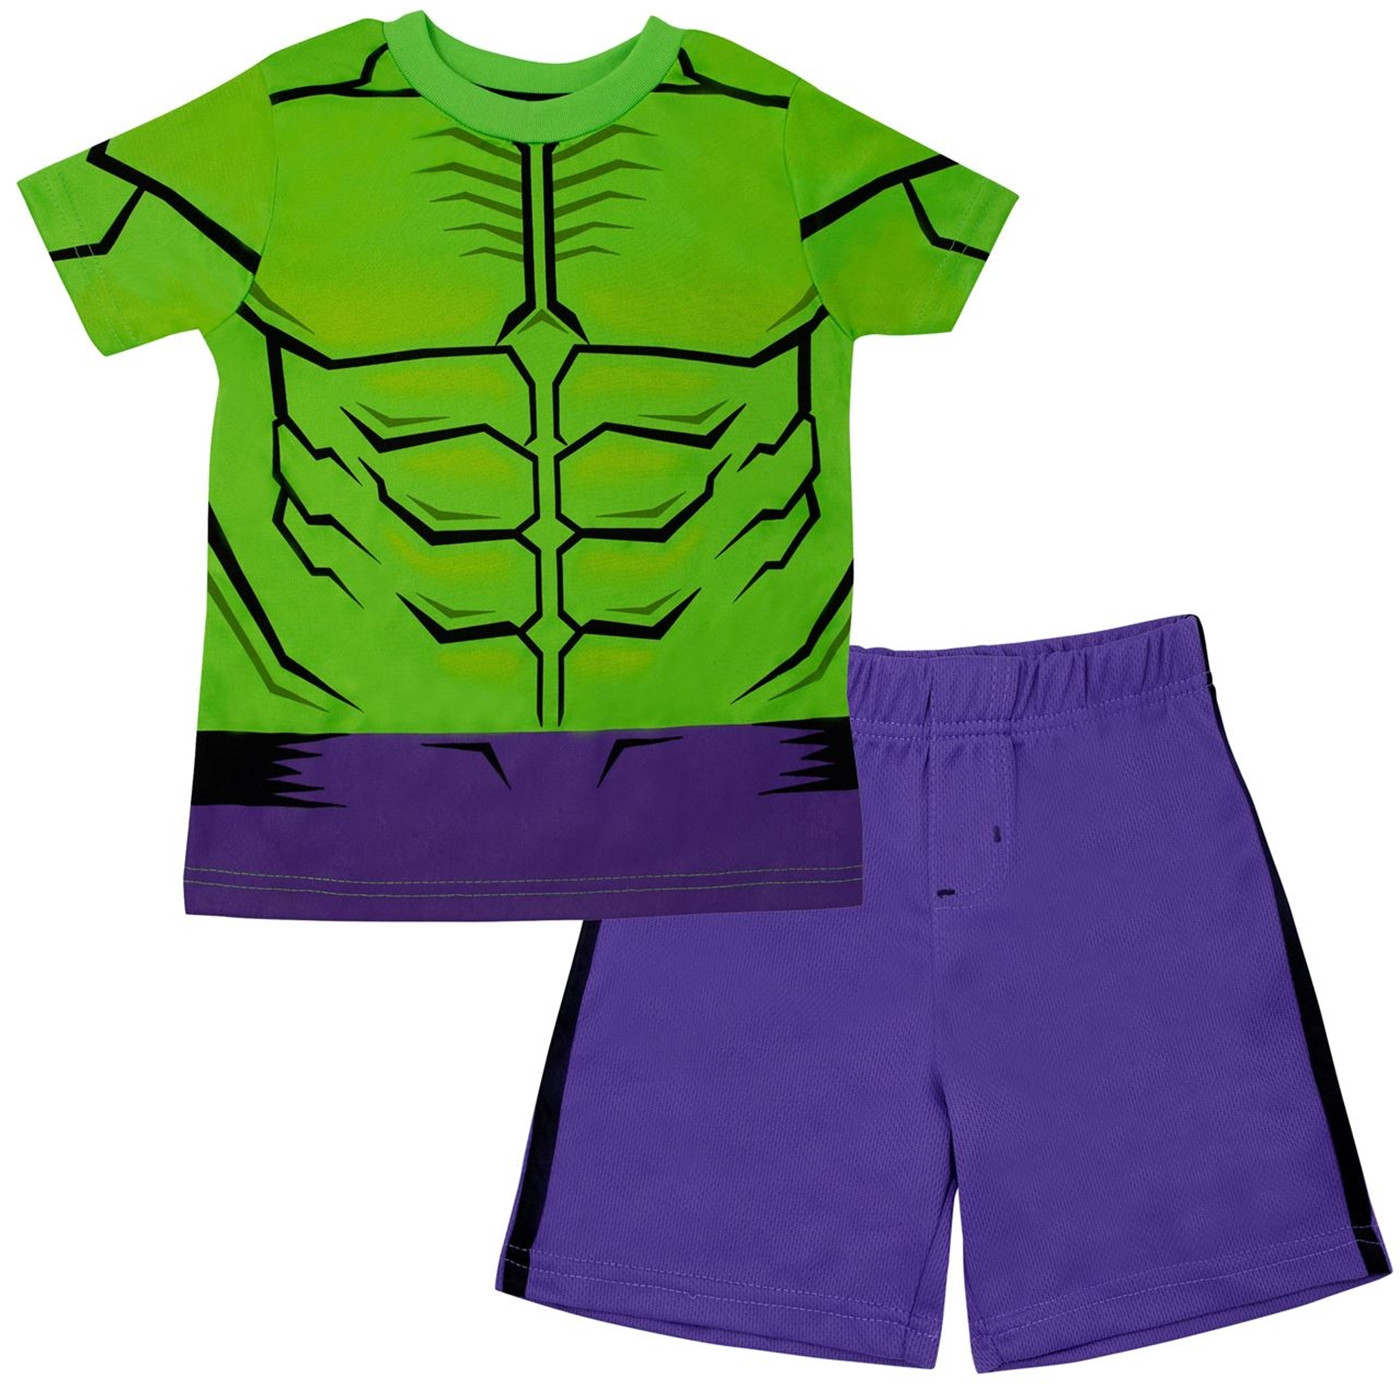 Incredible Hulk Performance Costume Kids Short Set